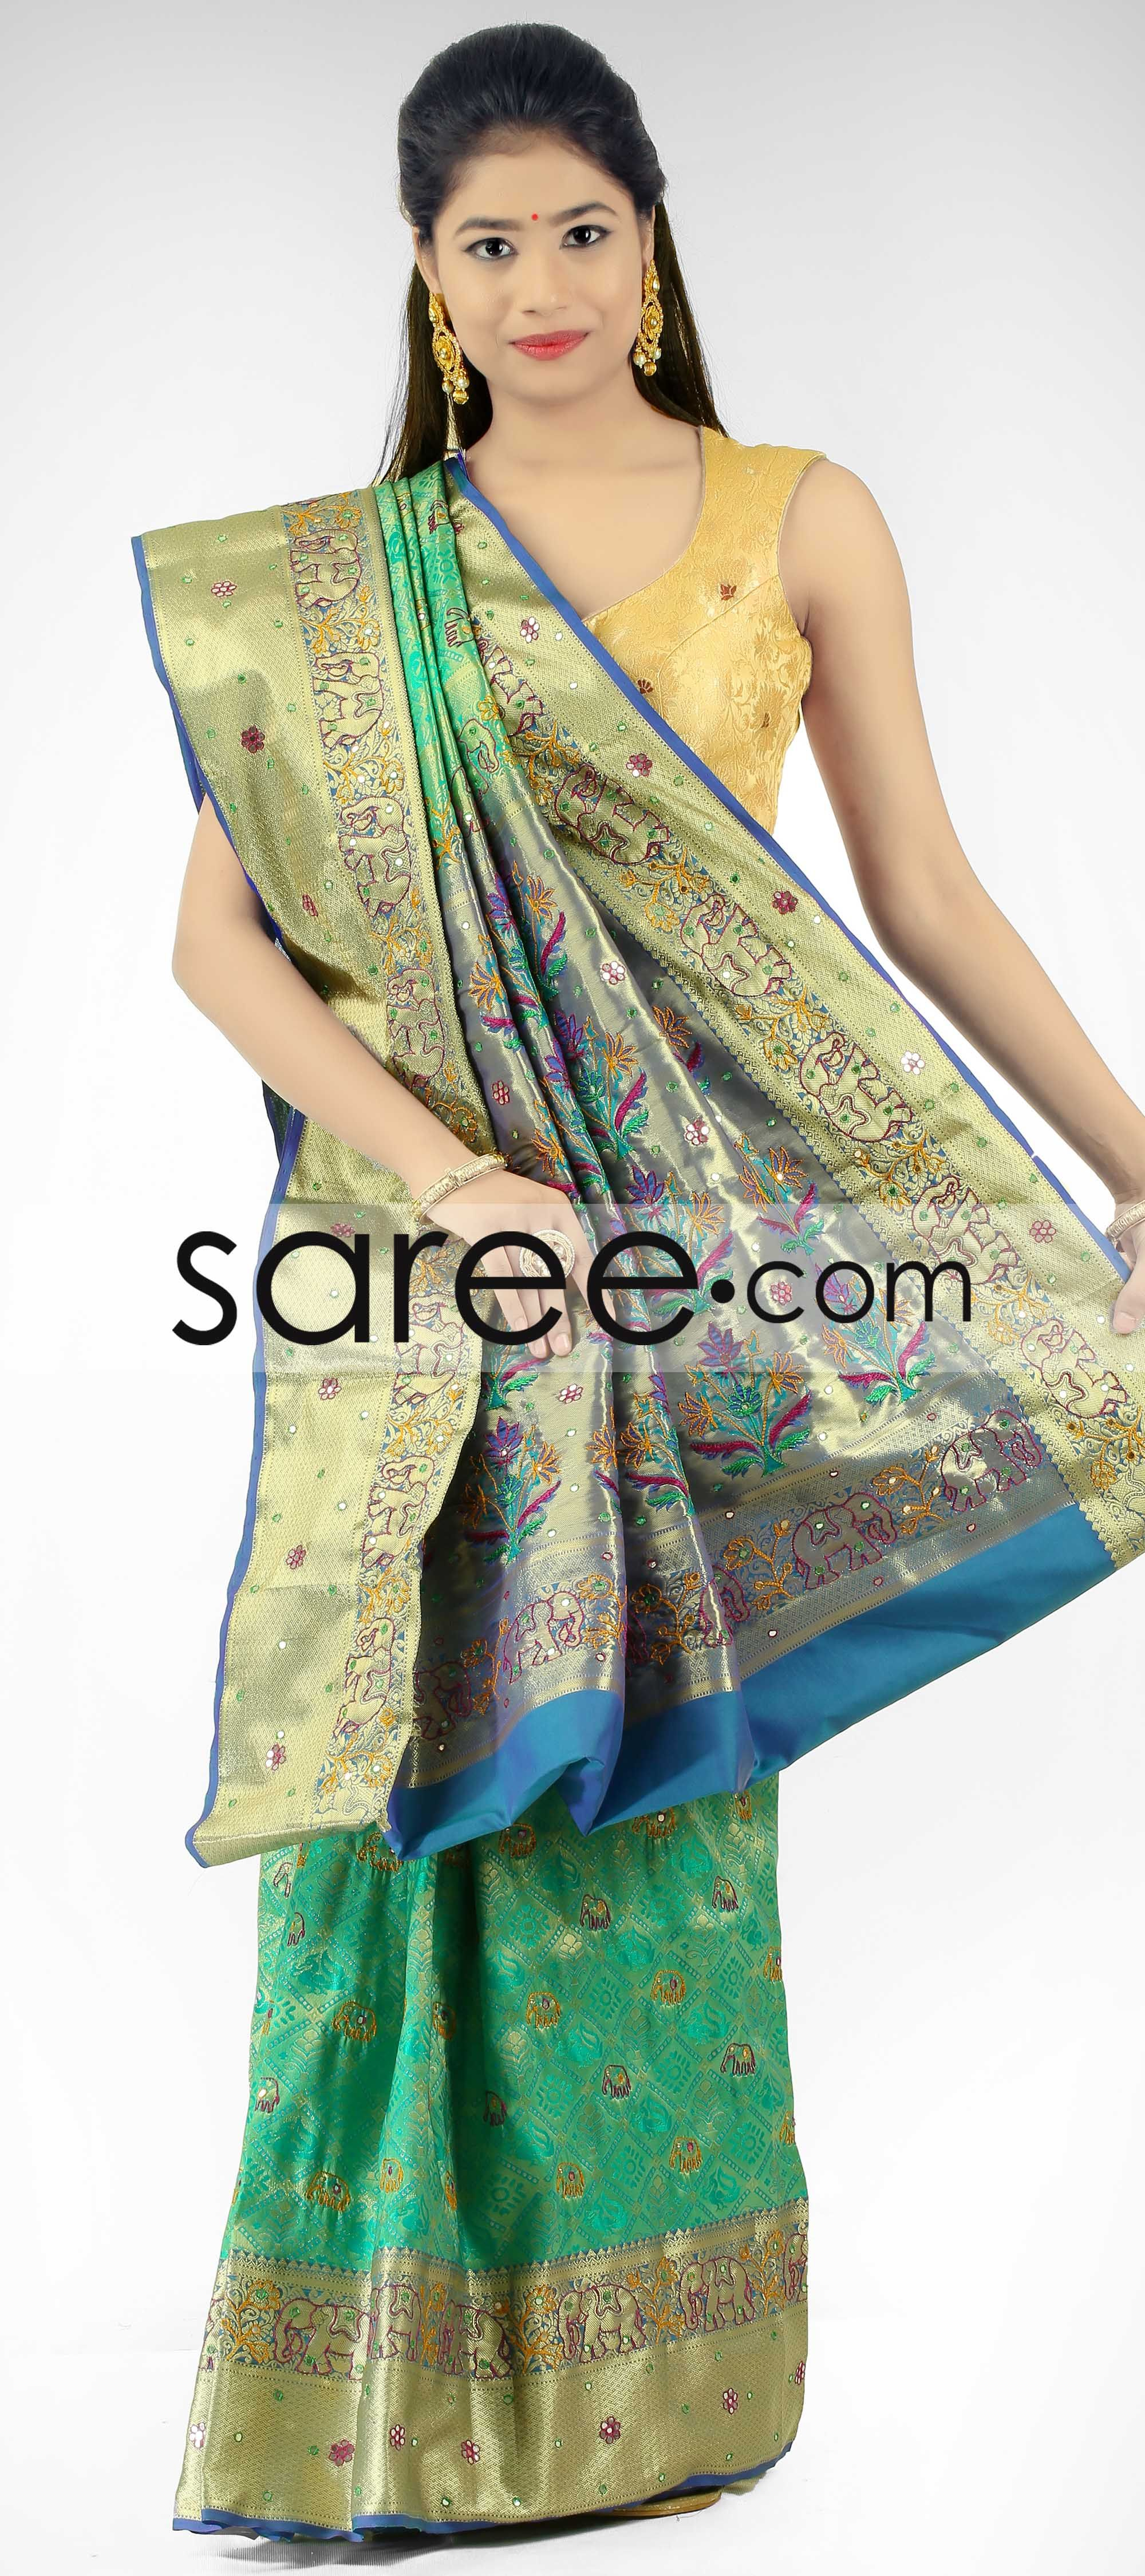 Green South Silk Saree With Mirror Work By Asopalav Saree Chiffonsarees Georgettesarees Indiansaree Sarees Silksarees Partywearsarees Weddingsarees